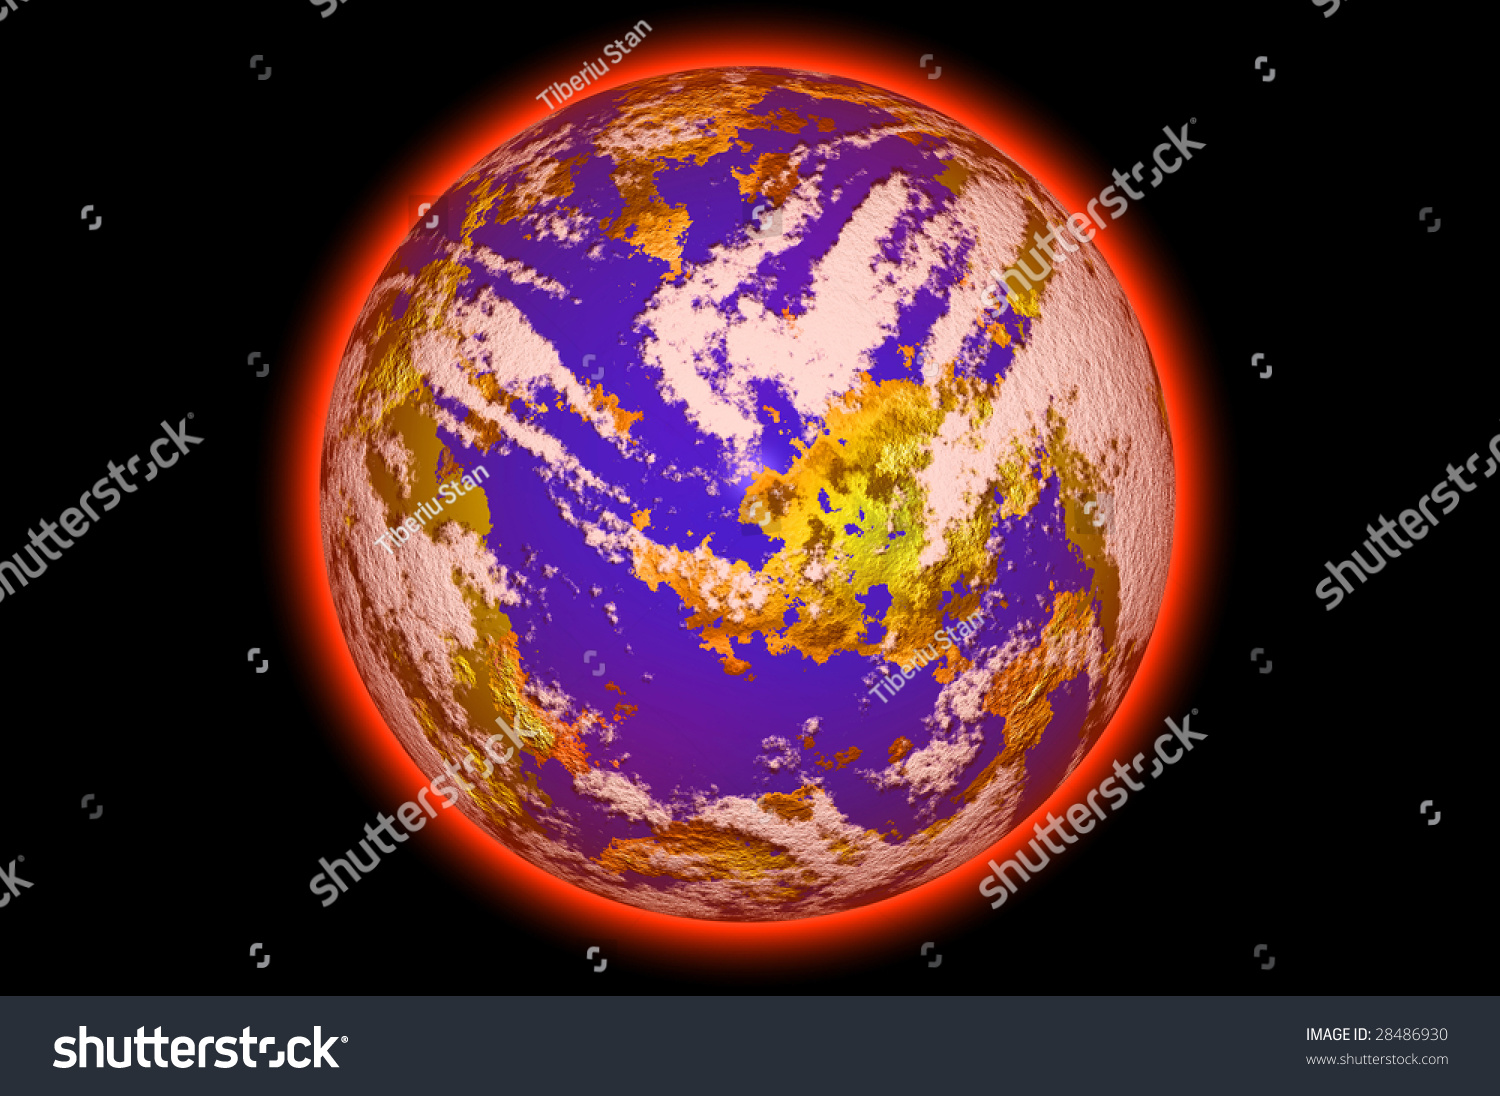 Essay on global warming and planet earth